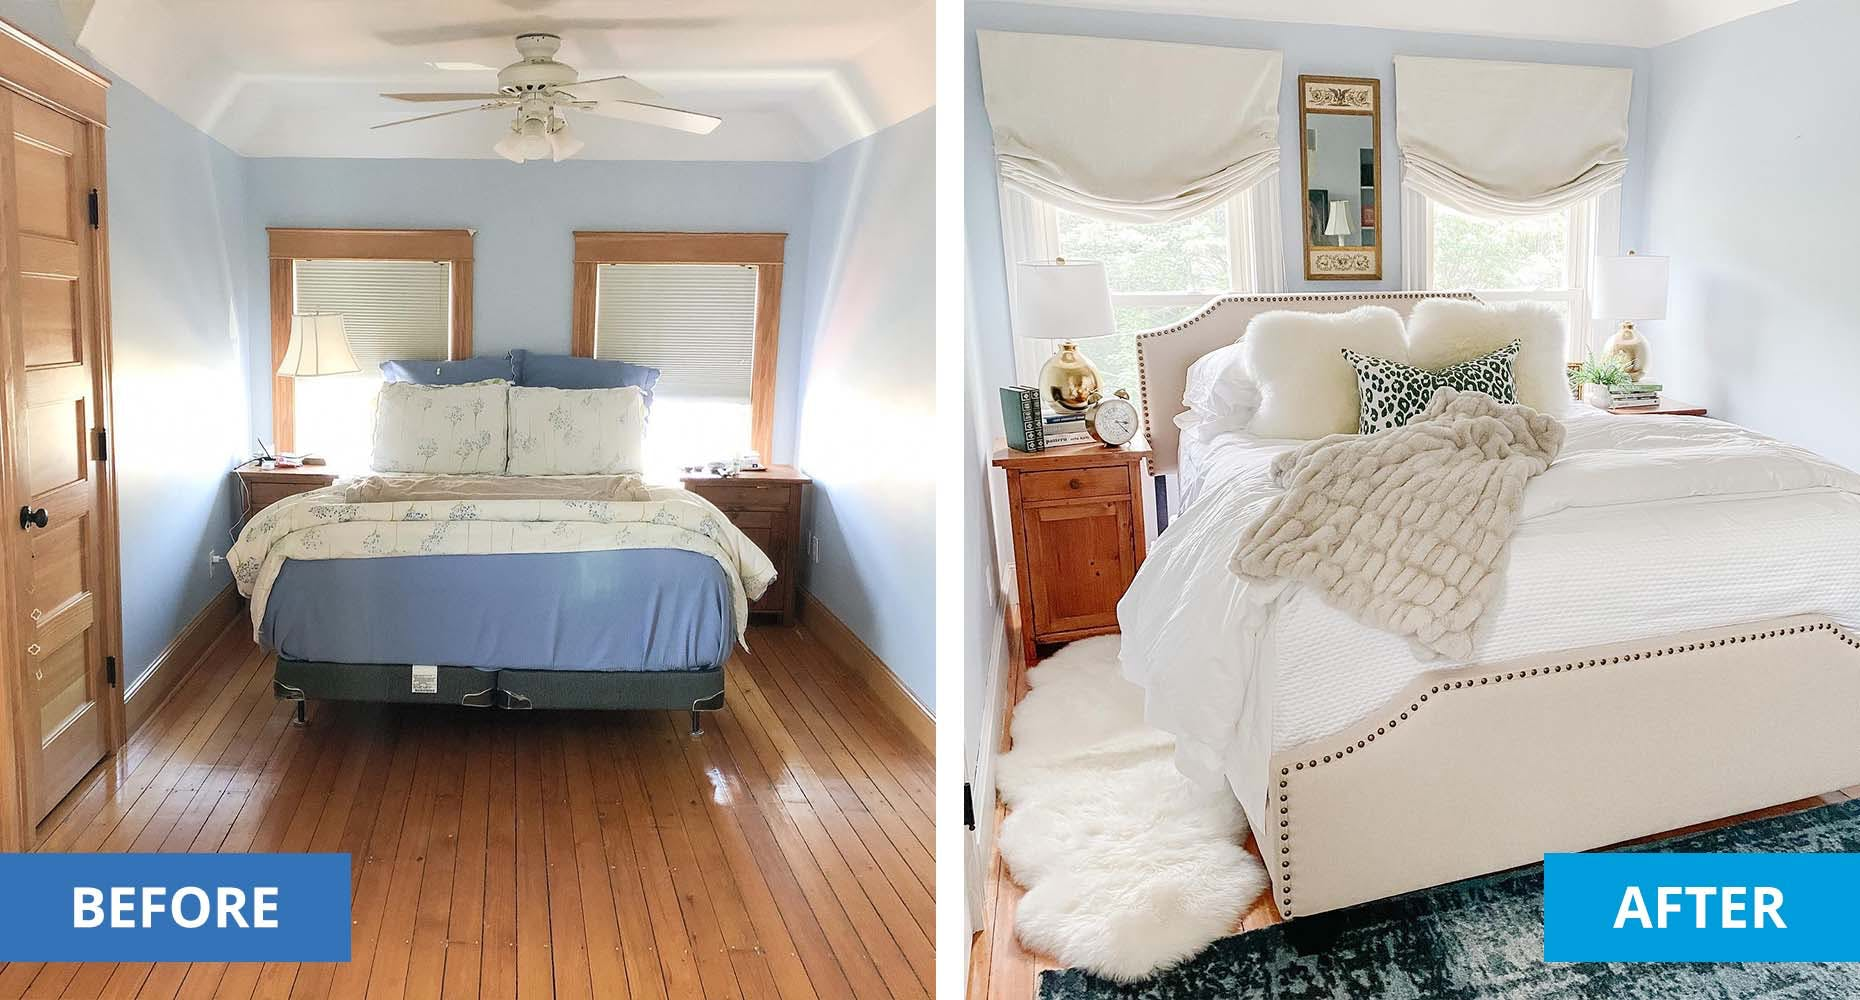 Left shows a plain bedroom pre-makeover. Right shows the same bedroom with fresh paint, new furniture and new window treatments.